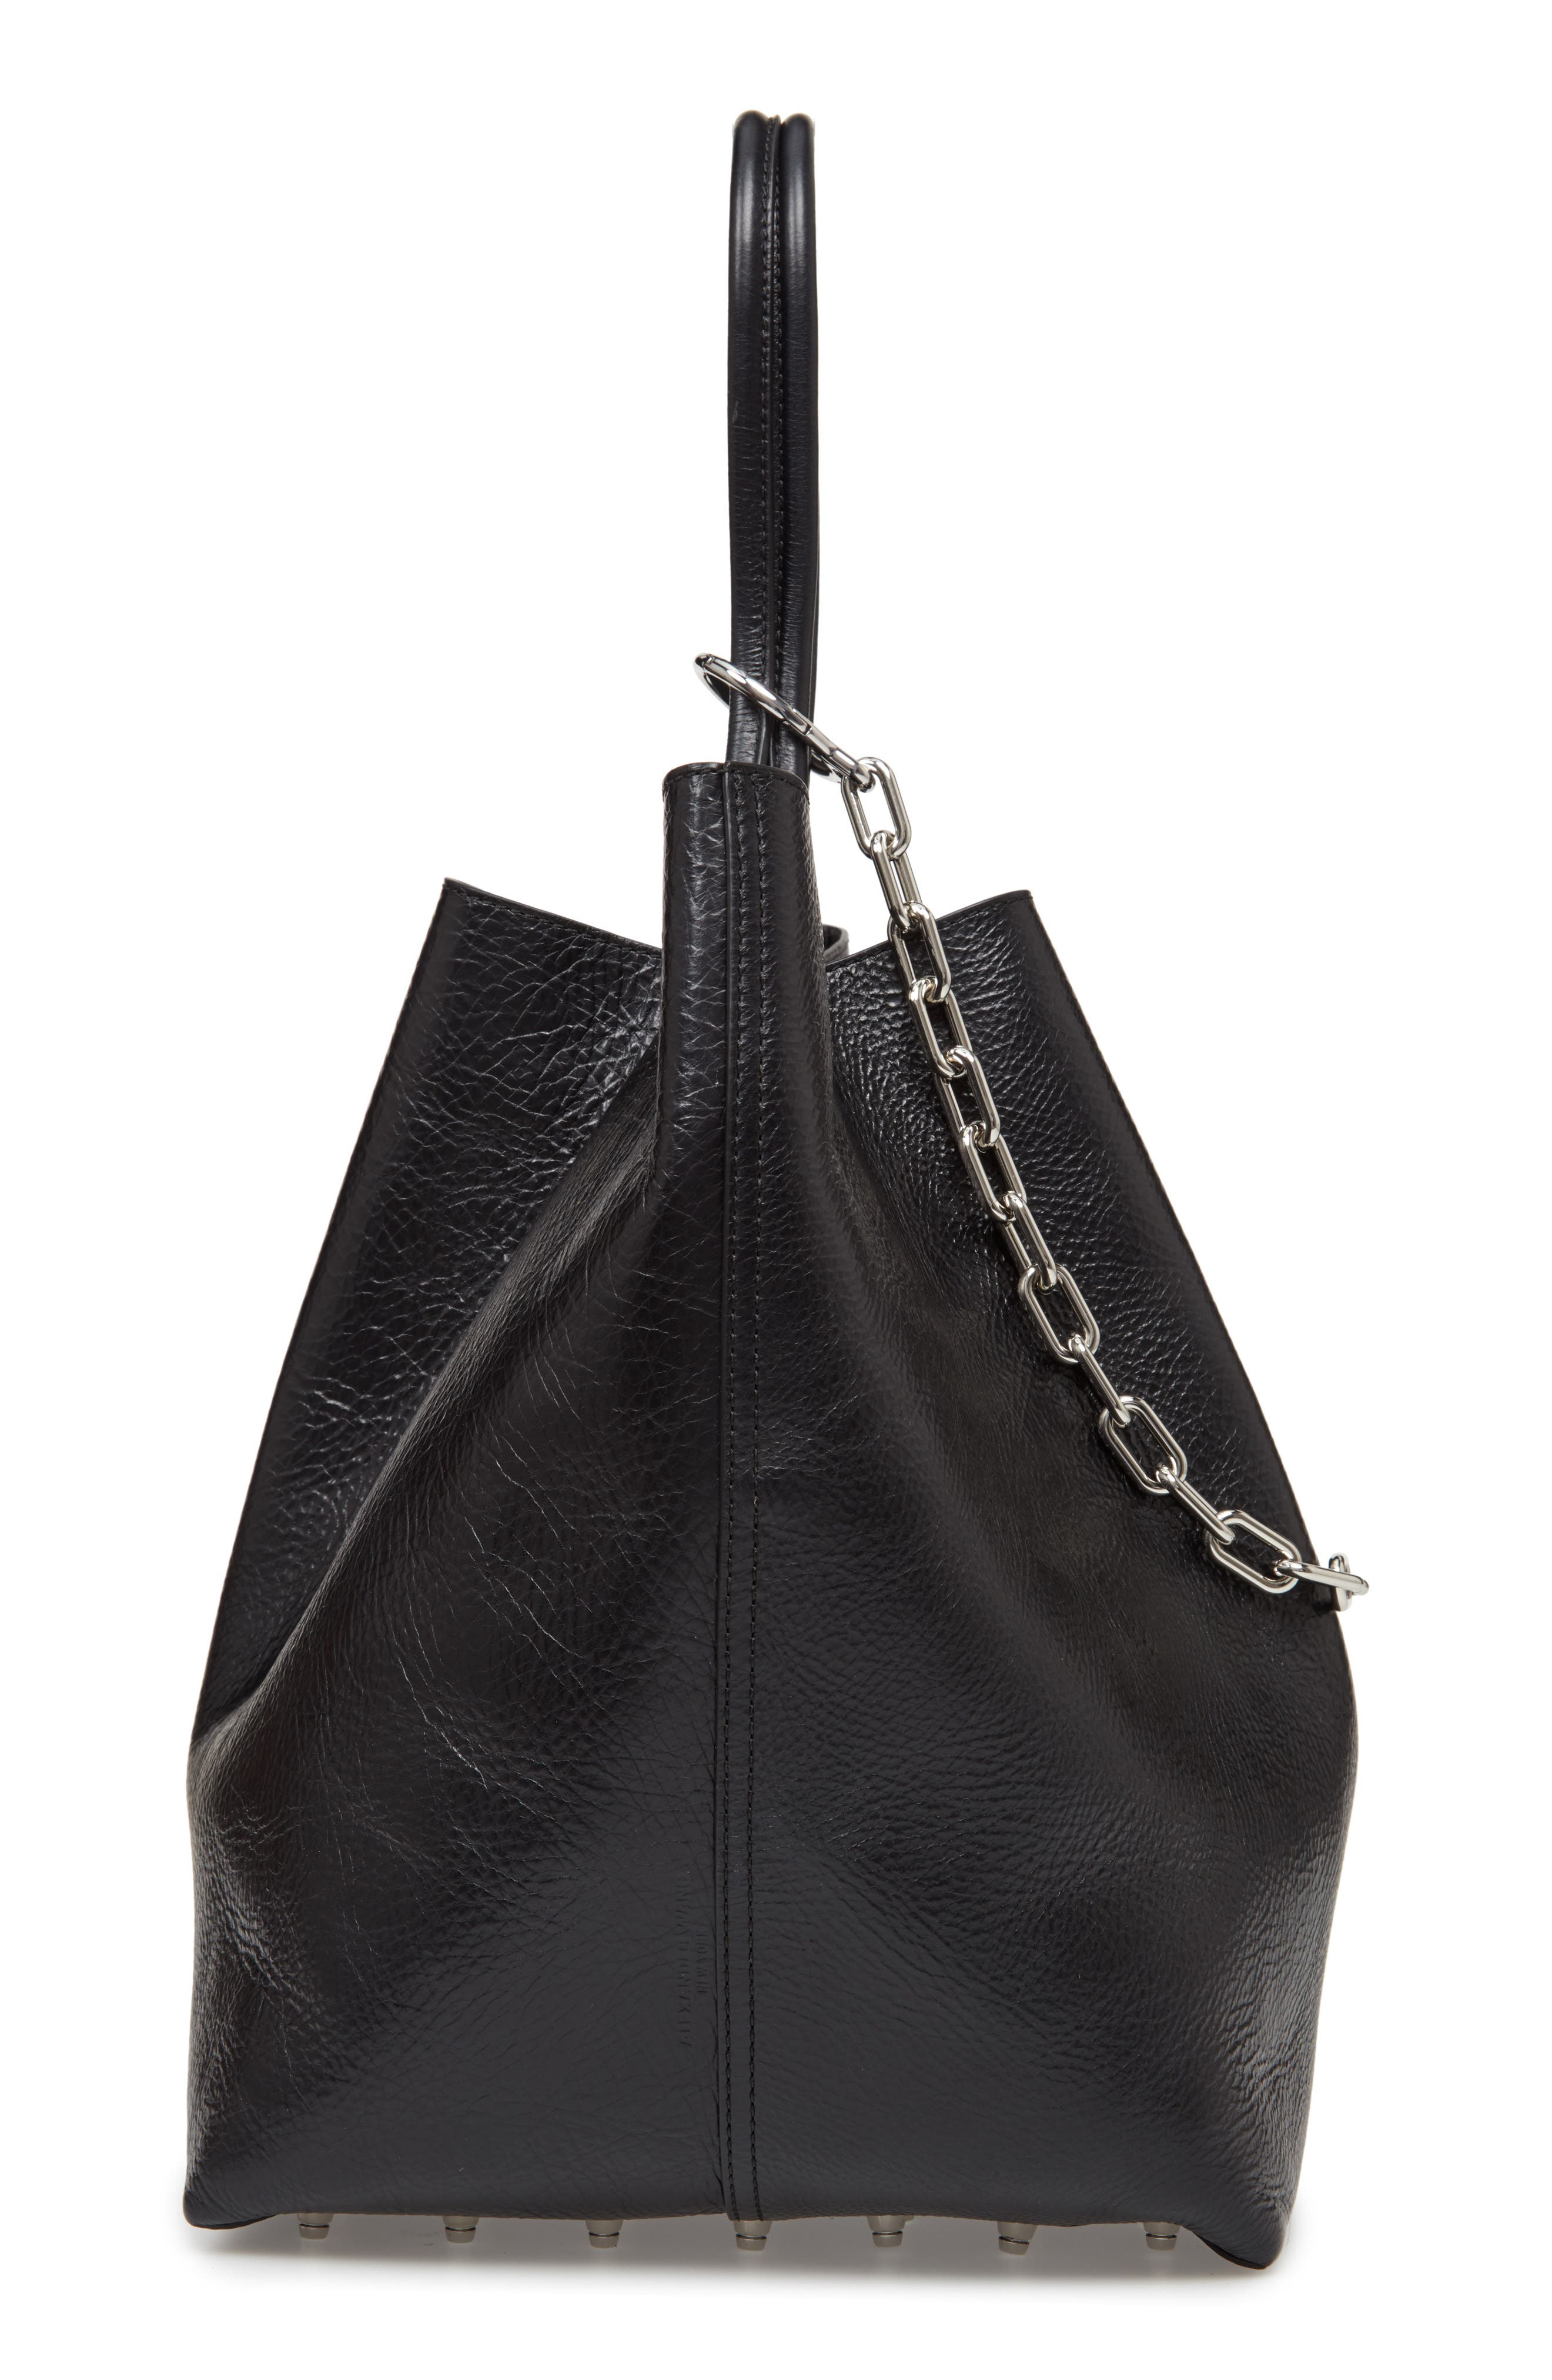 ALEXANDER WANG, Large Roxy Leather Tote Bag, Alternate thumbnail 5, color, BLACK